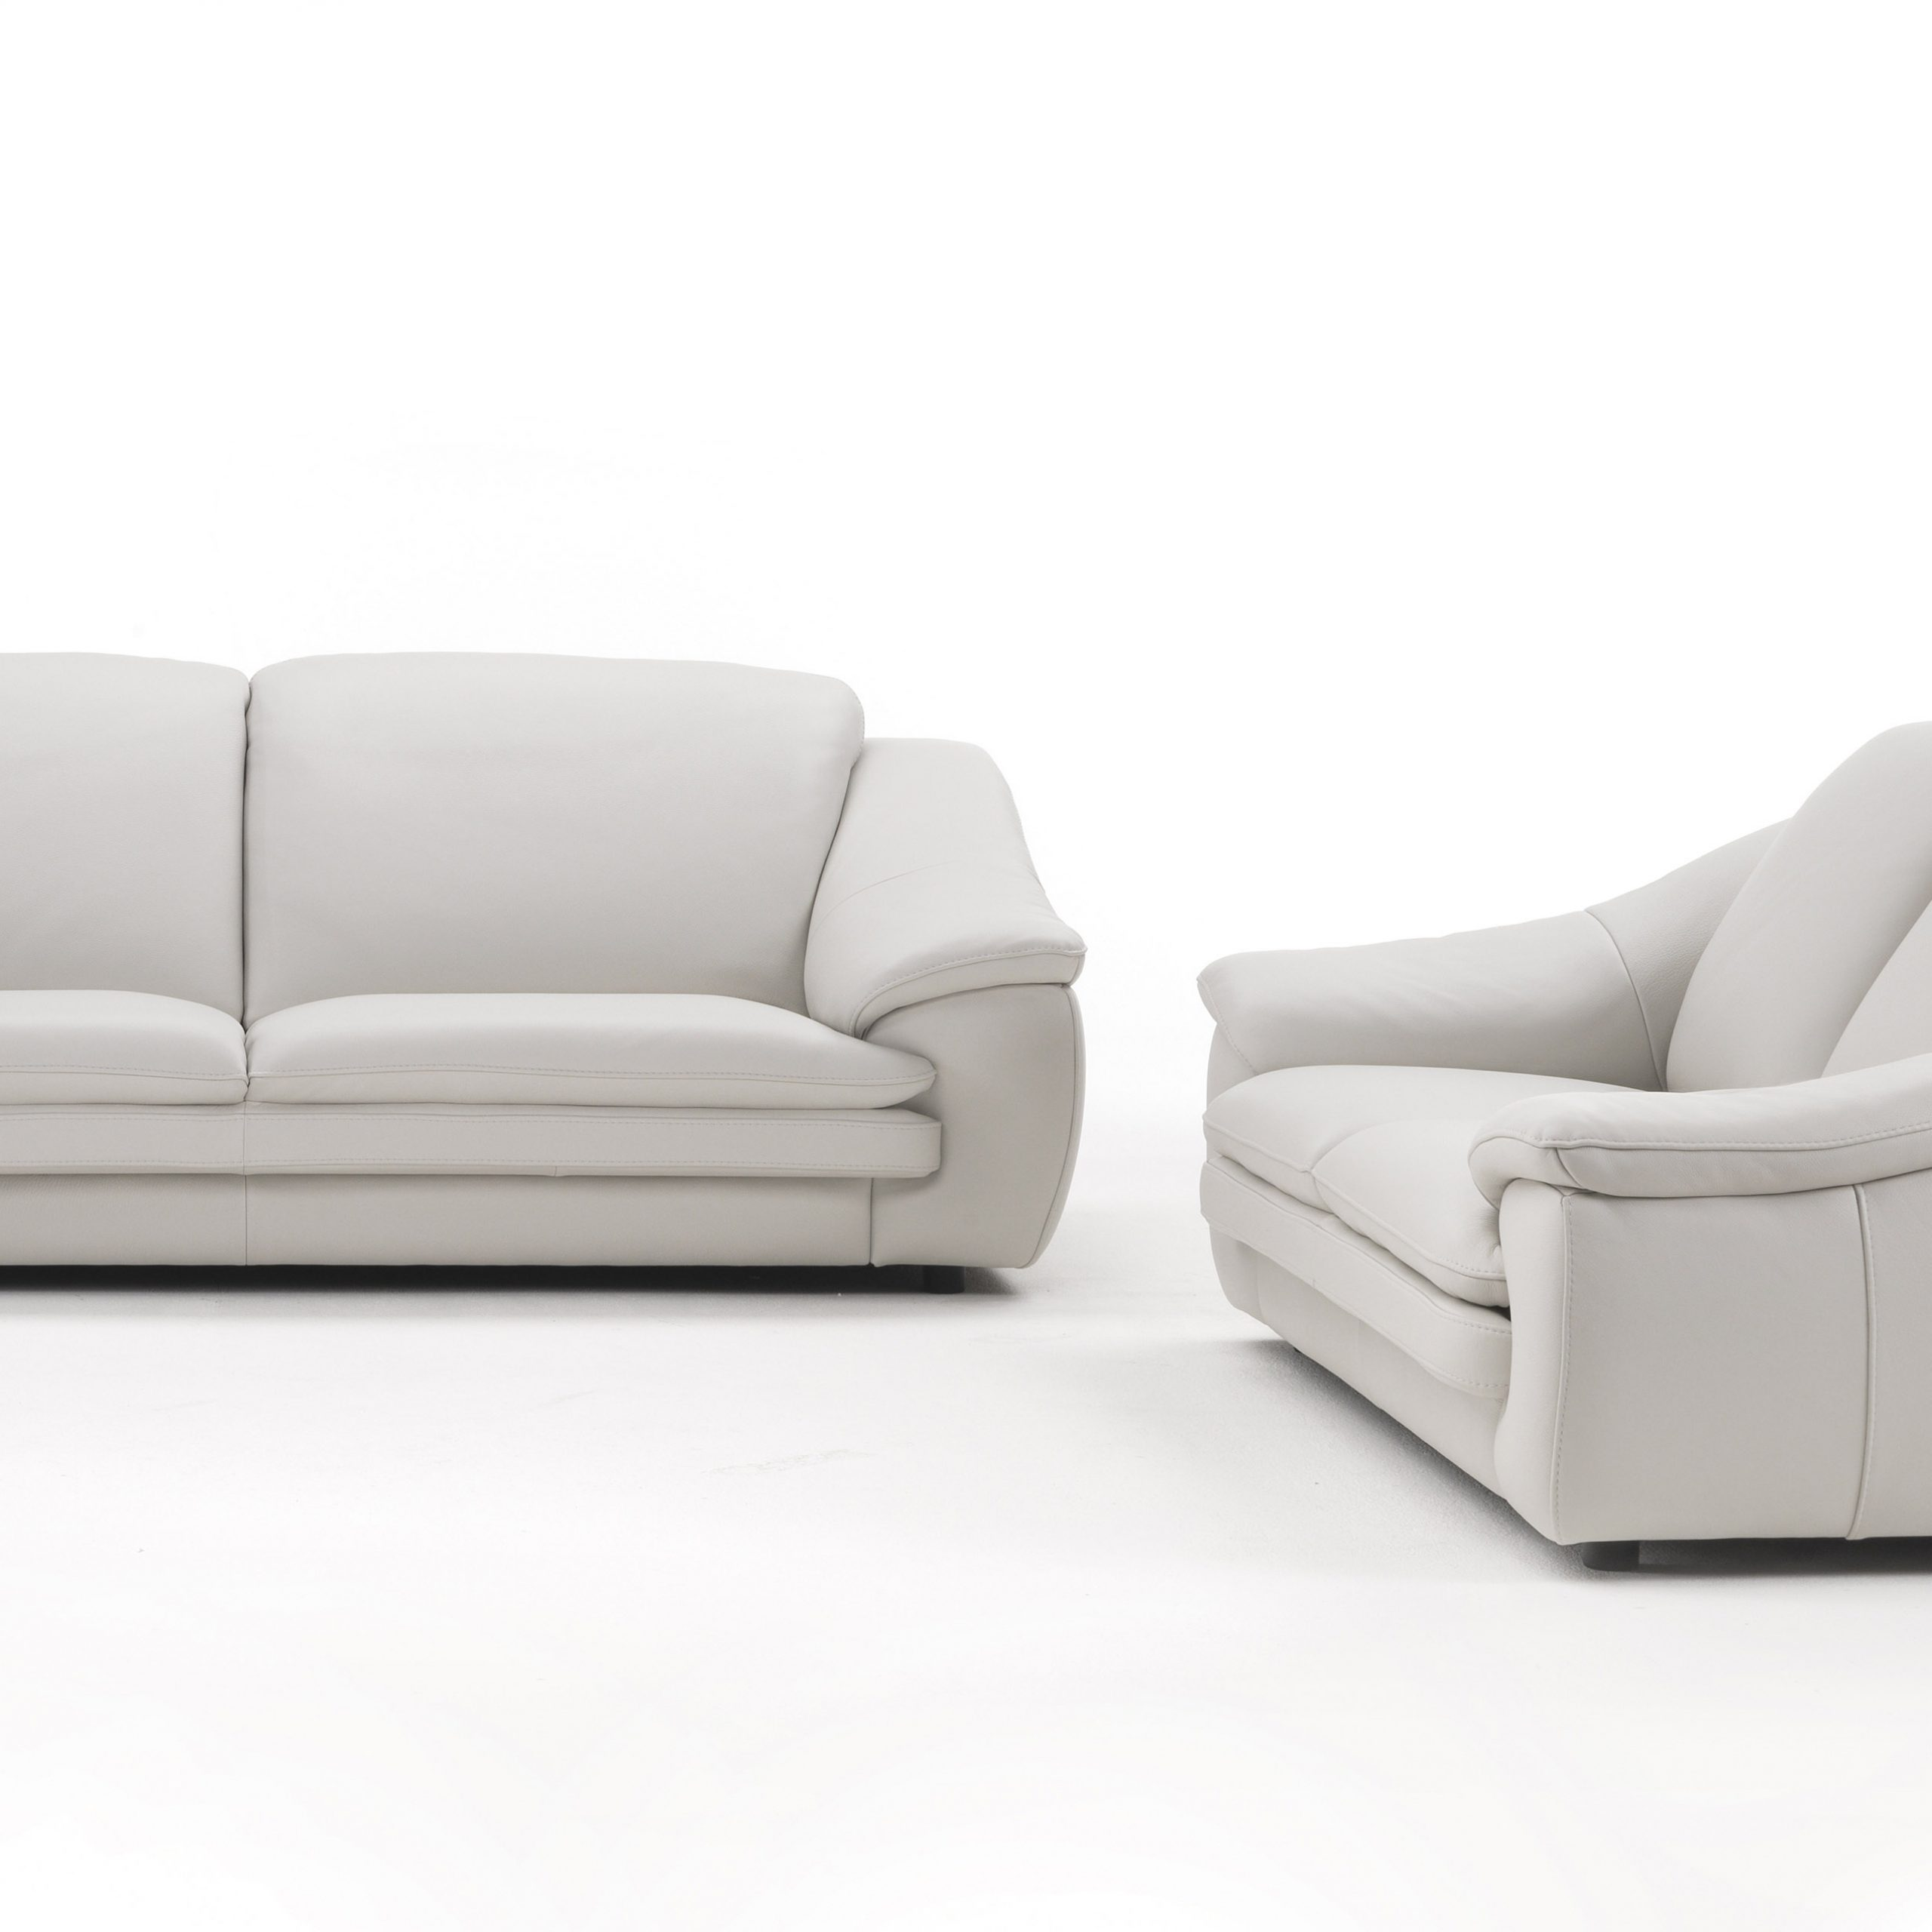 Dayse Contemporary Loveseats With Cushion With Best And Newest Contemporary Leather Sofa Set With Padded Arms And Cushions (View 21 of 25)